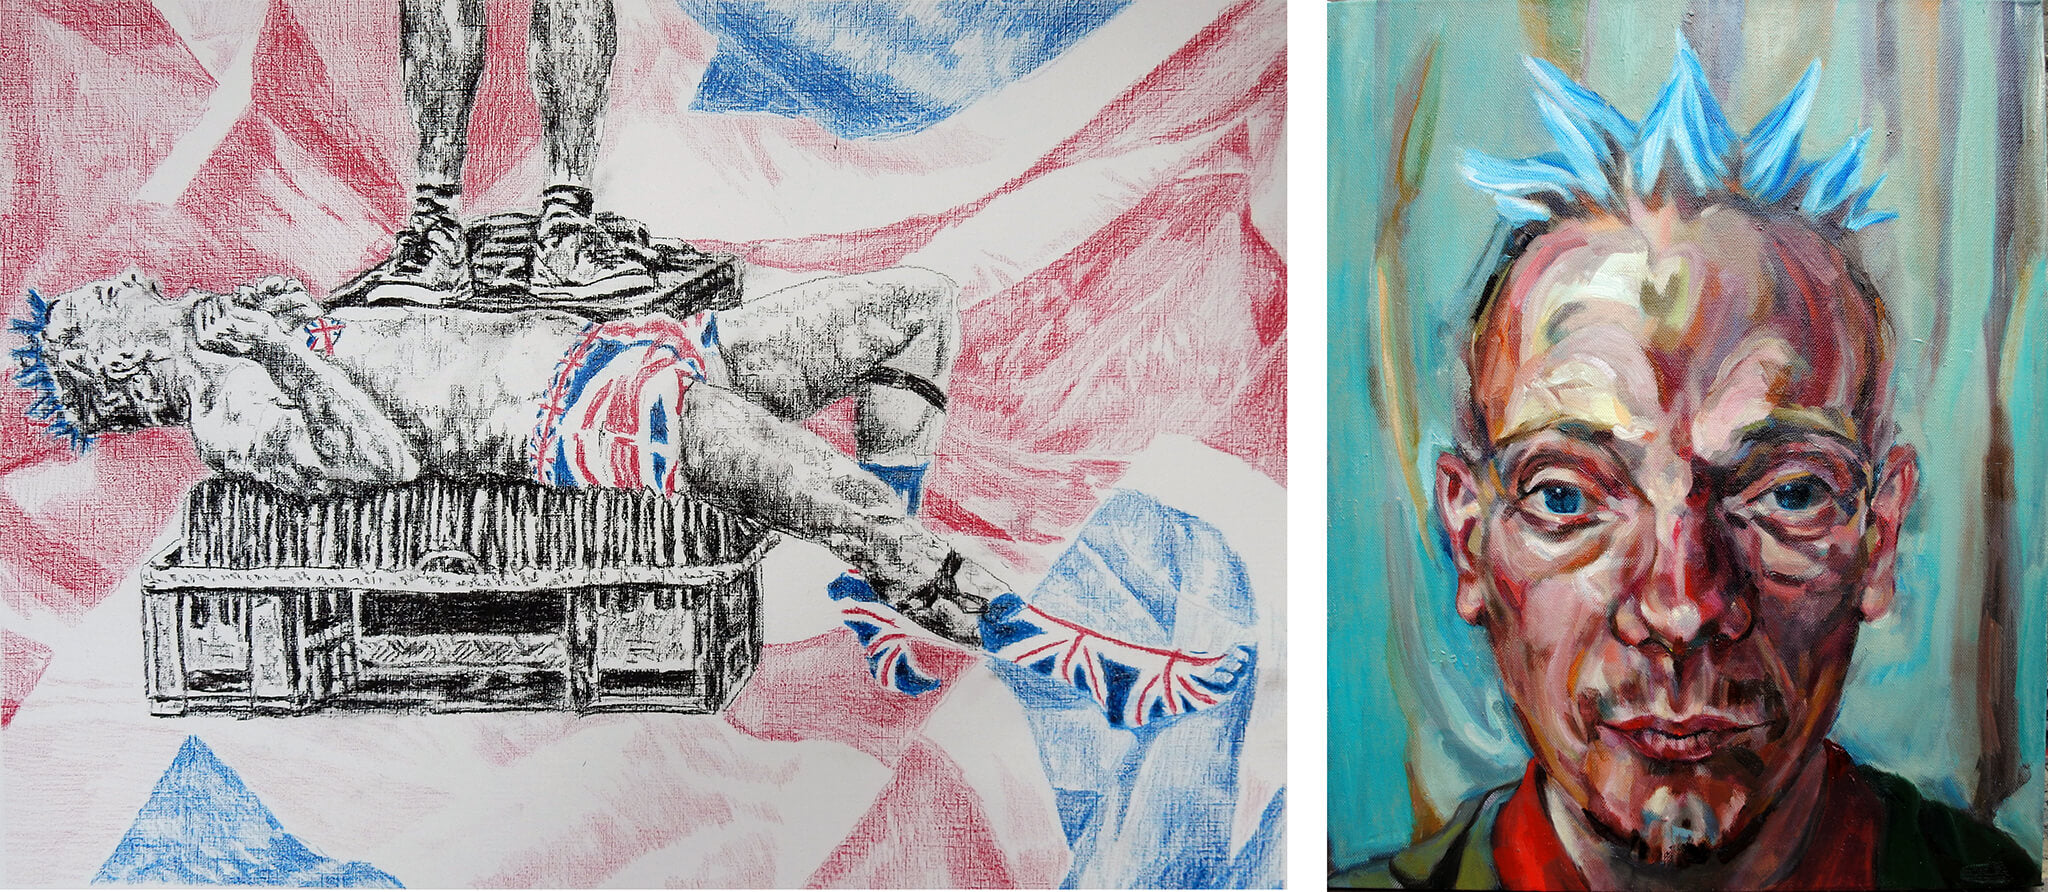 Spikey the bed o' nails artist Covent Garden - drawn and in oil on canvas artworks - by Stella Tooth.